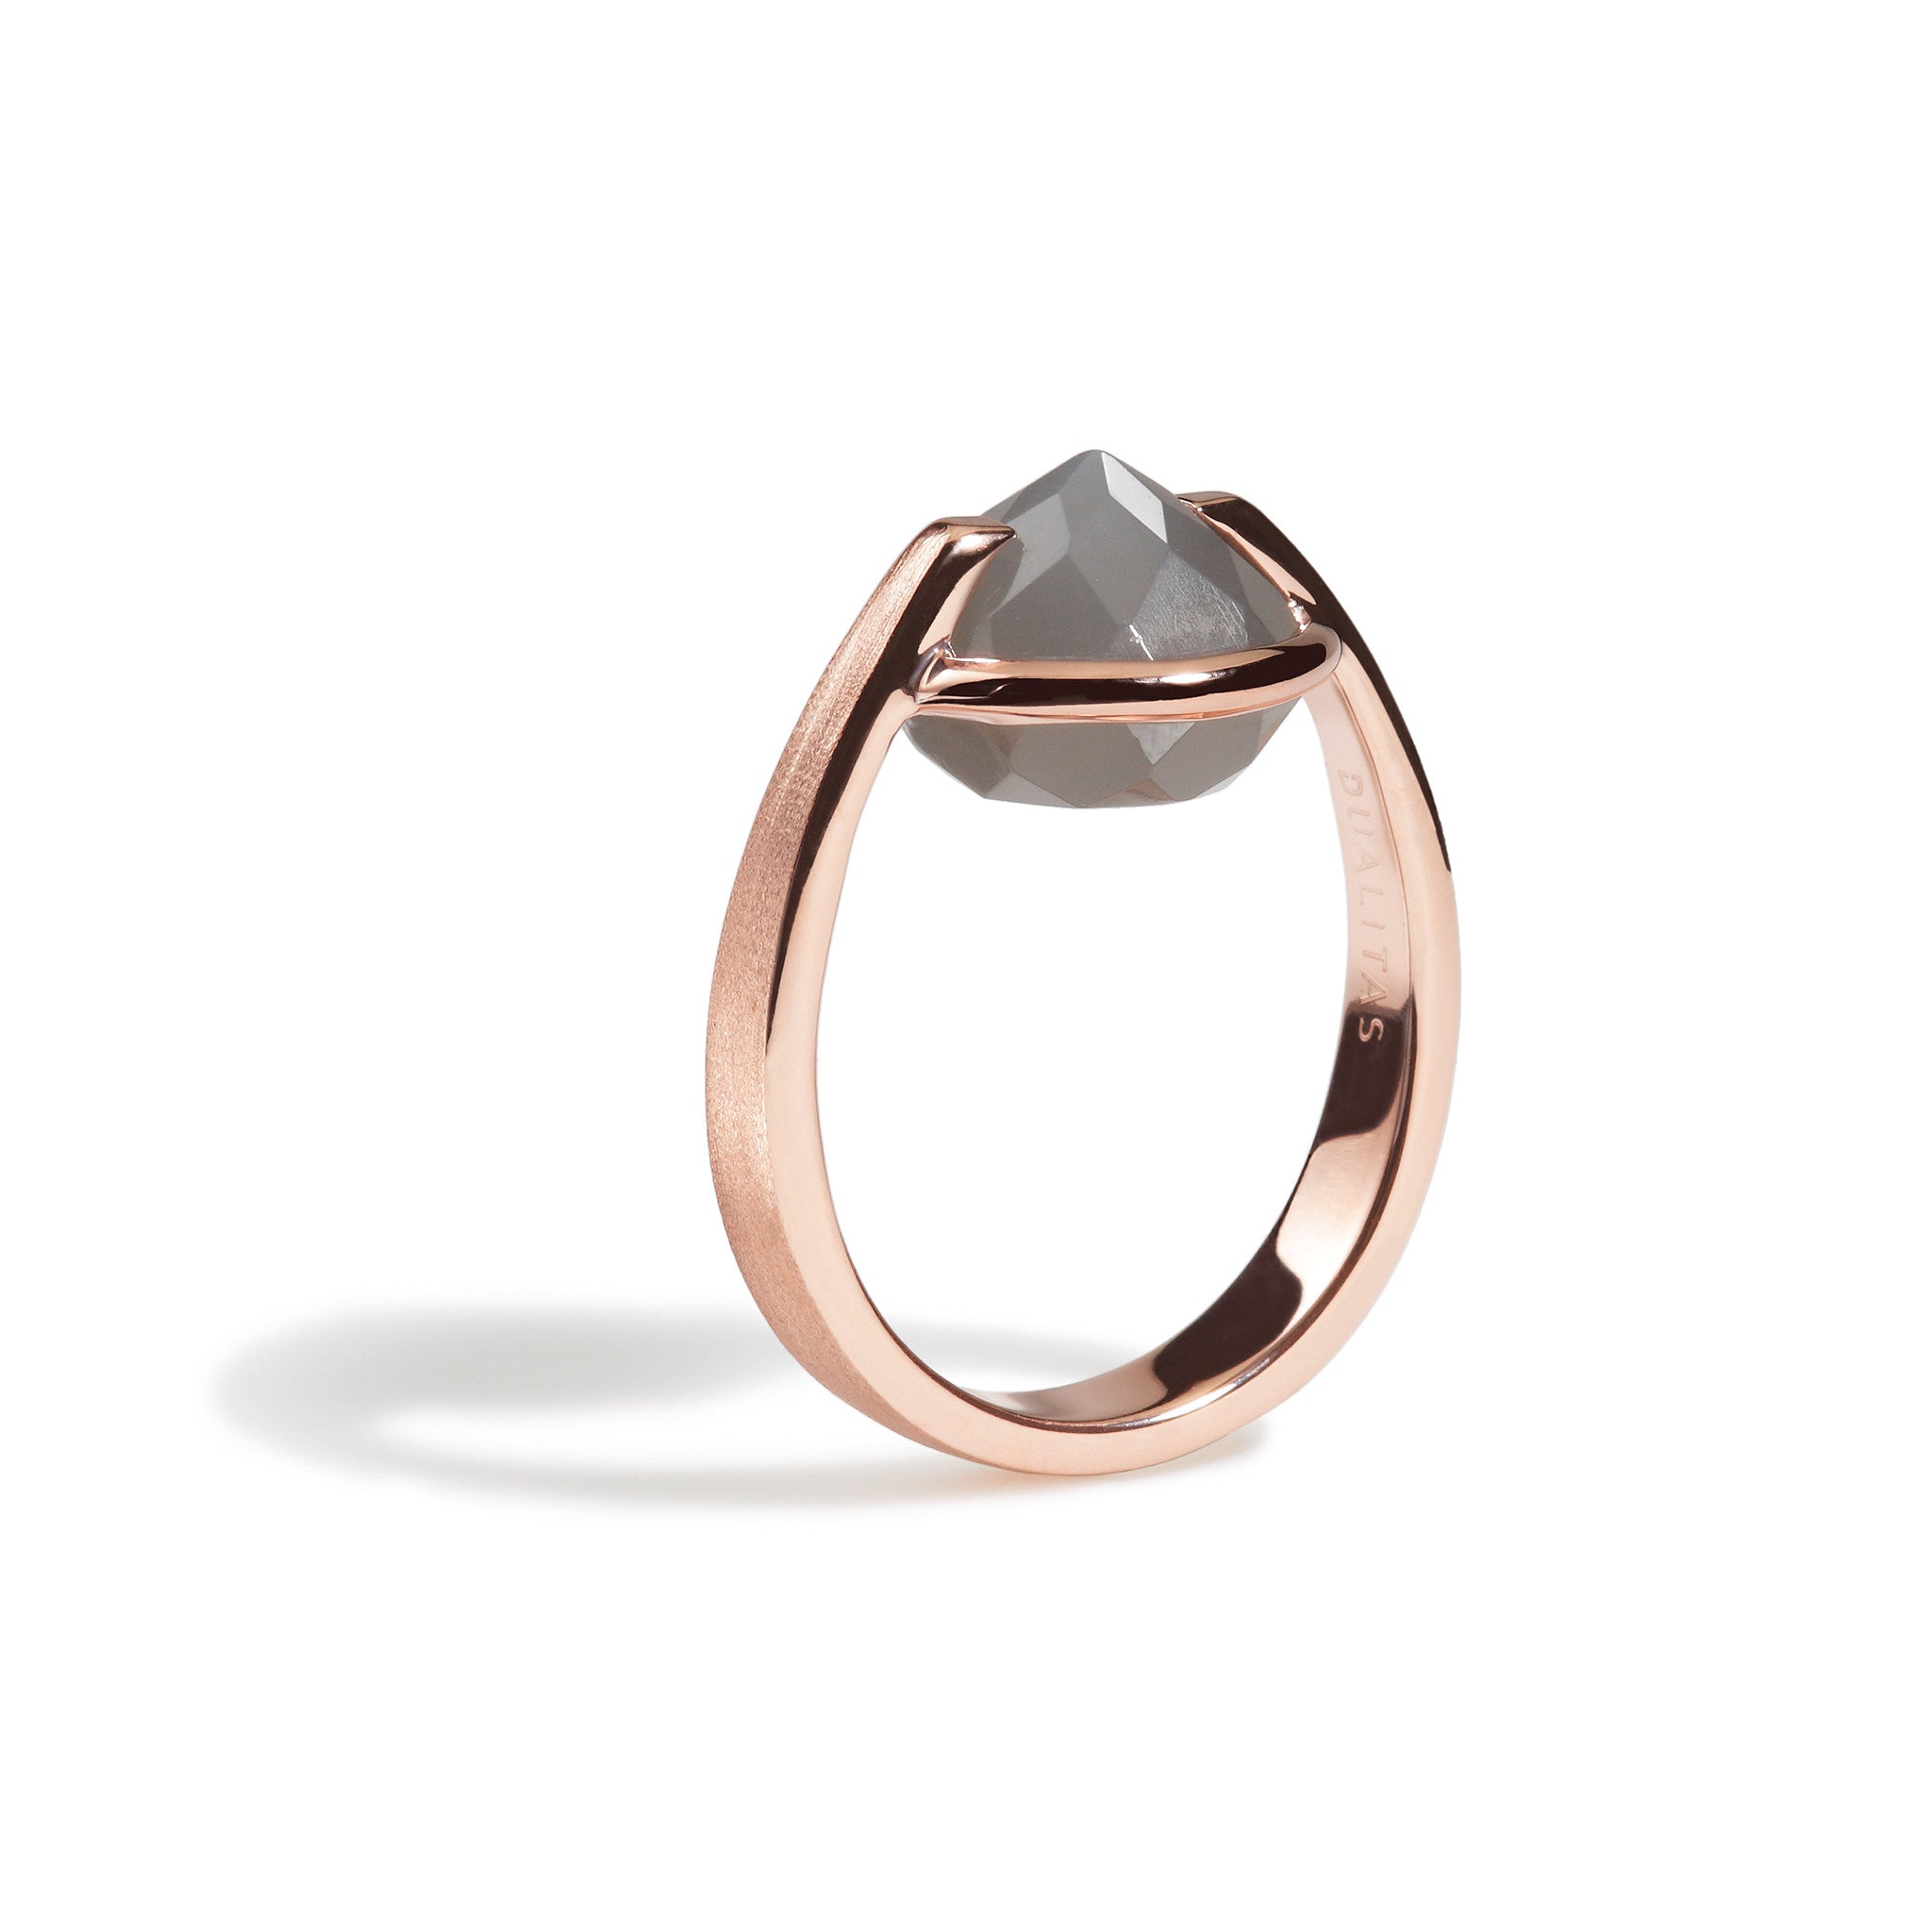 design spin jewellers contemporary pink shot rings archives coast brushed category ring engagement jewellery gold hand